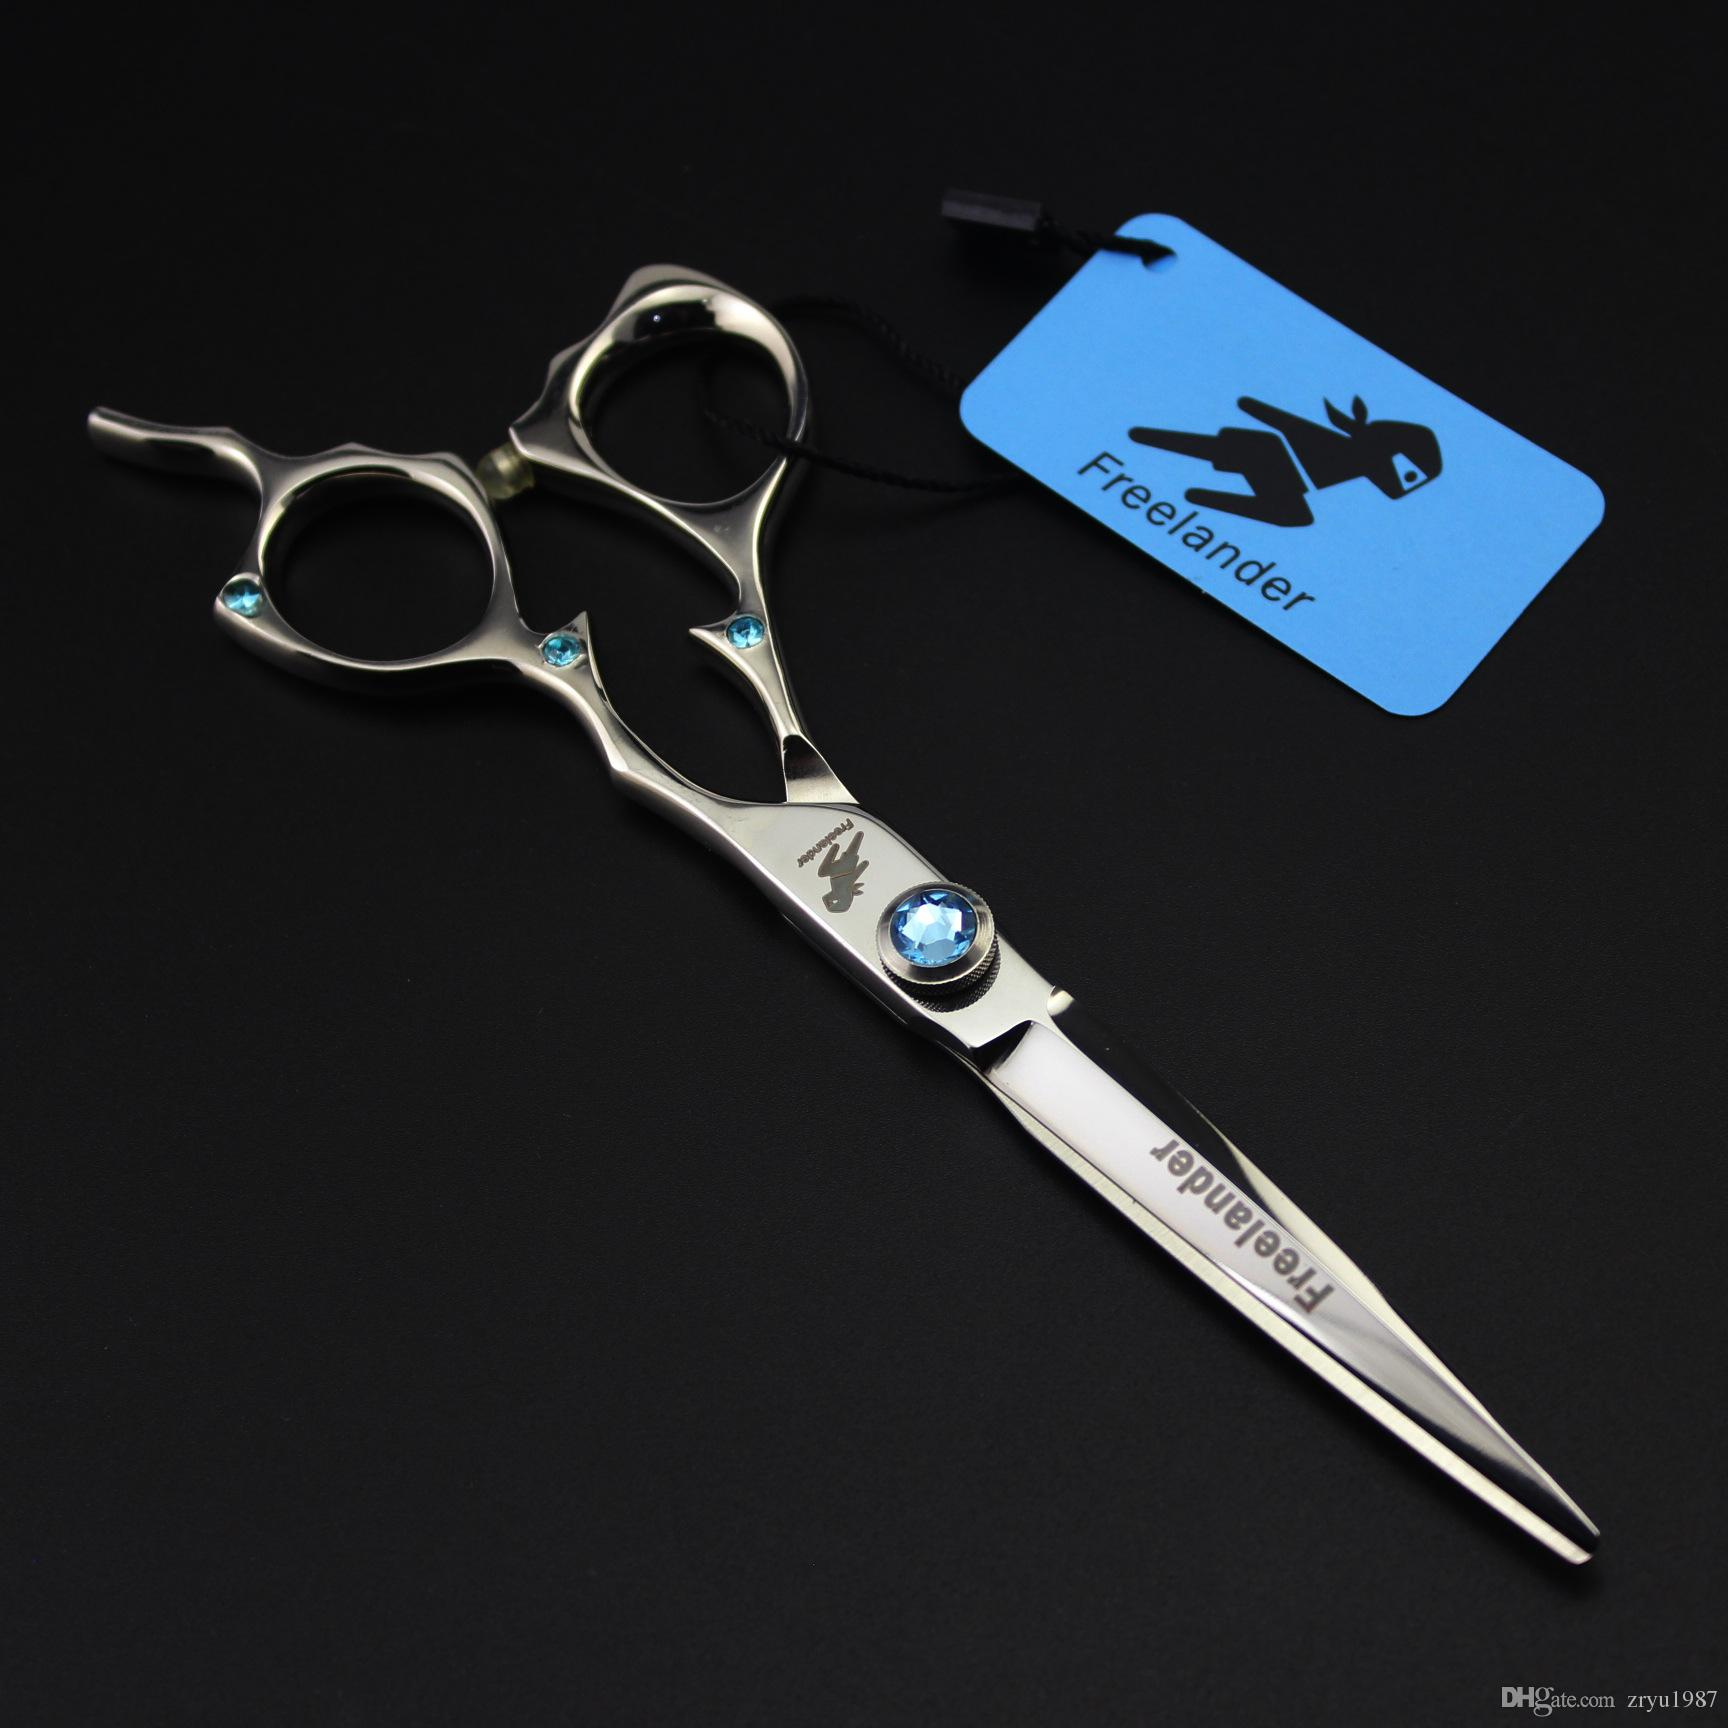 """6.0"""" Professional Hair Scissors Cutting Shears Salon Razor Hairdressing Barber tool with case"""